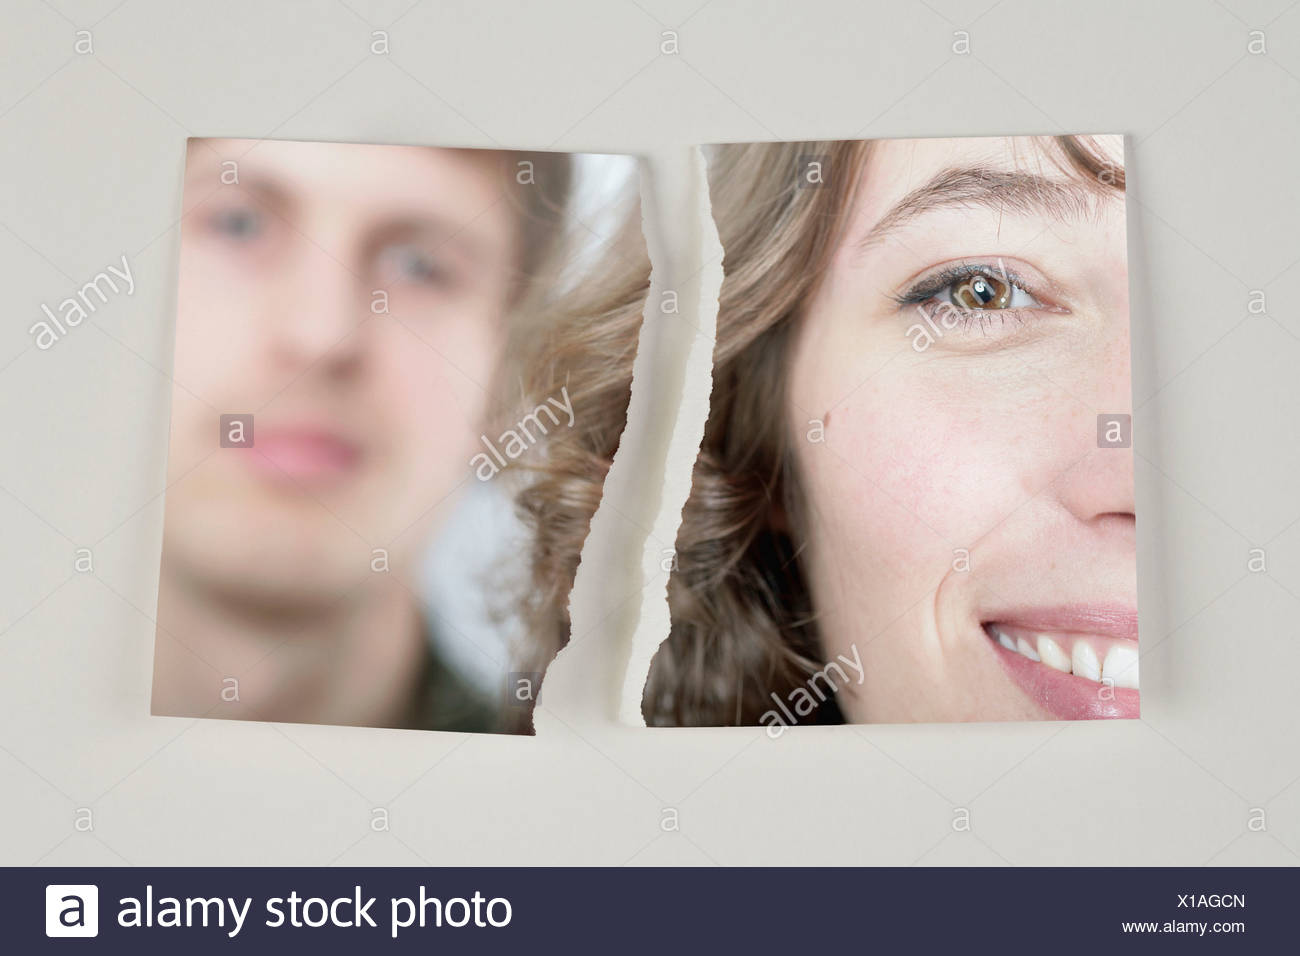 A photograph of a heterosexual couple torn in half - Stock Image